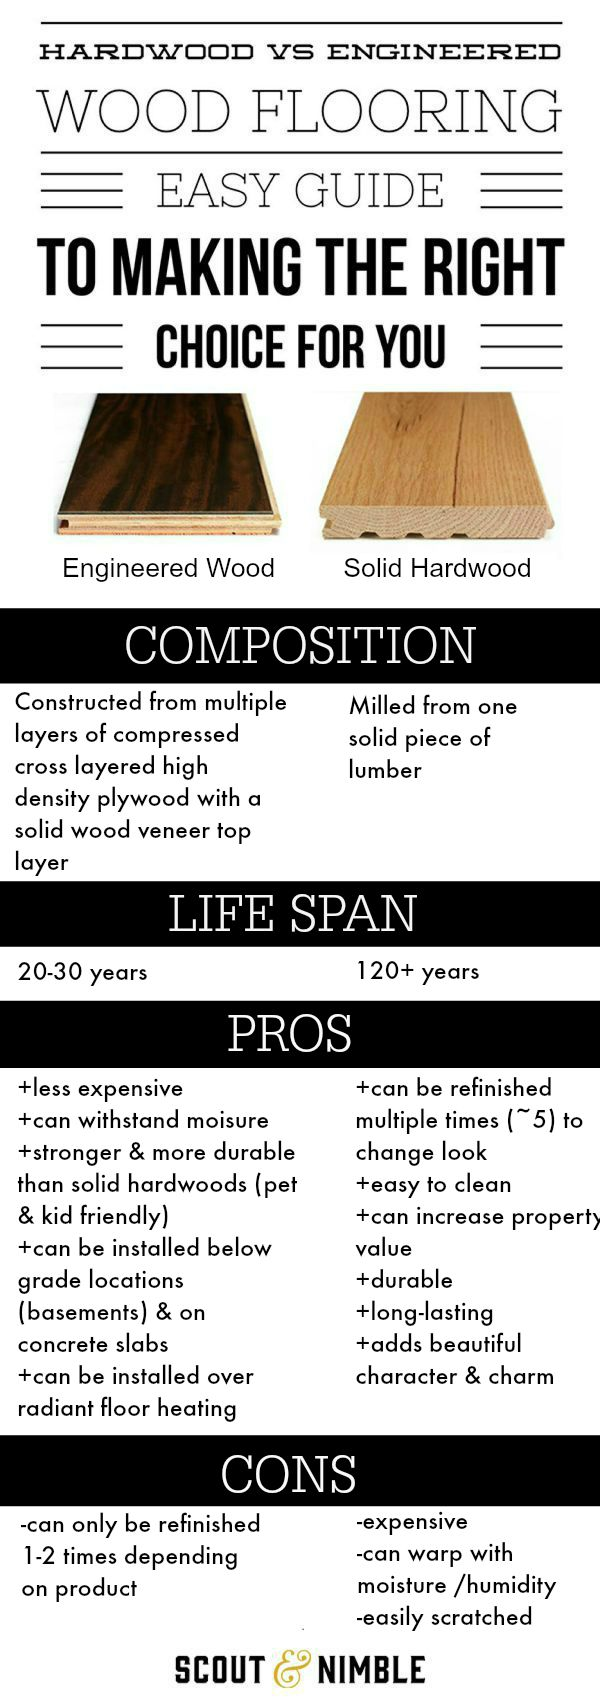 Solid-versus-Engineered-Wood-Floors-Infographic-Comparison-Scout-Nimble.jpg